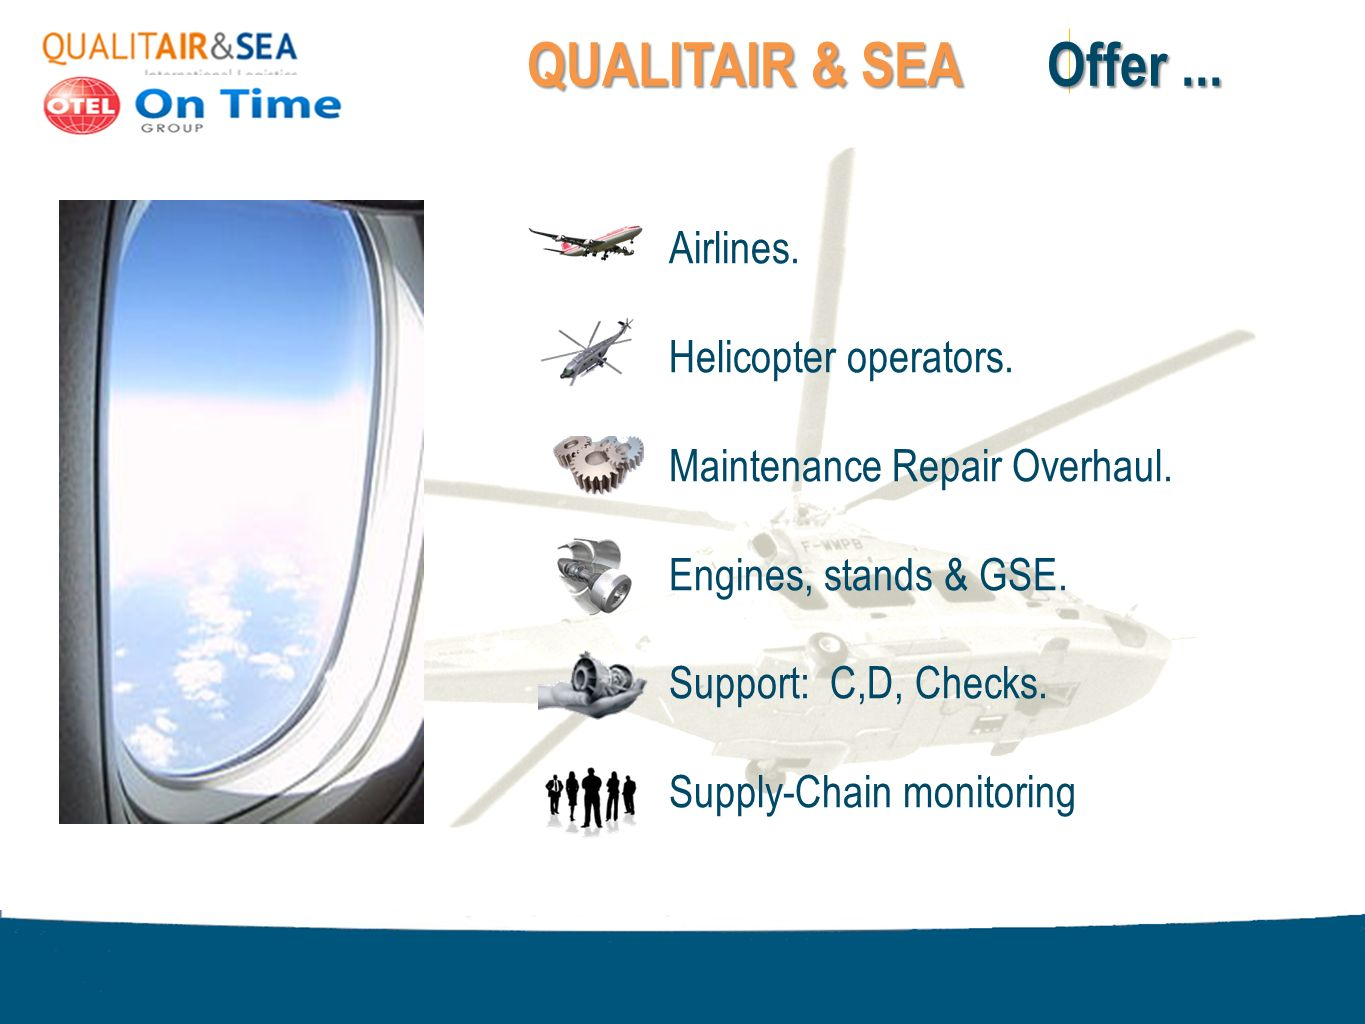 QUALITAIR & SEA Offer ... Airlines. Helicopter operators.